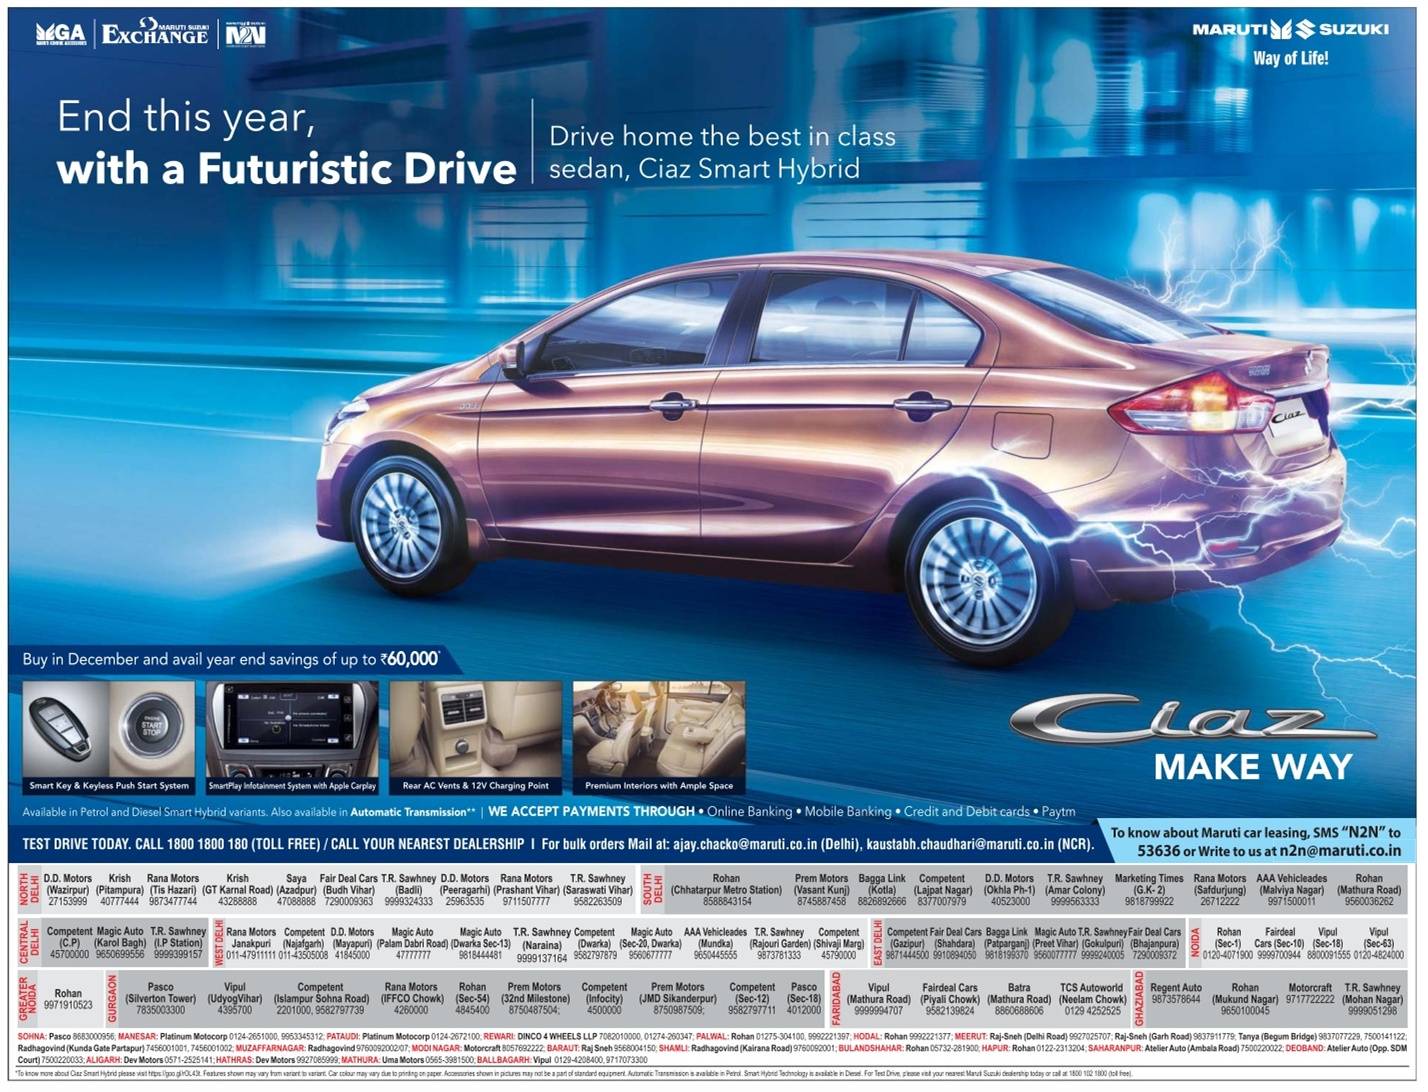 The best offer of the year maruthi suzuki cars december 2016 year end sale